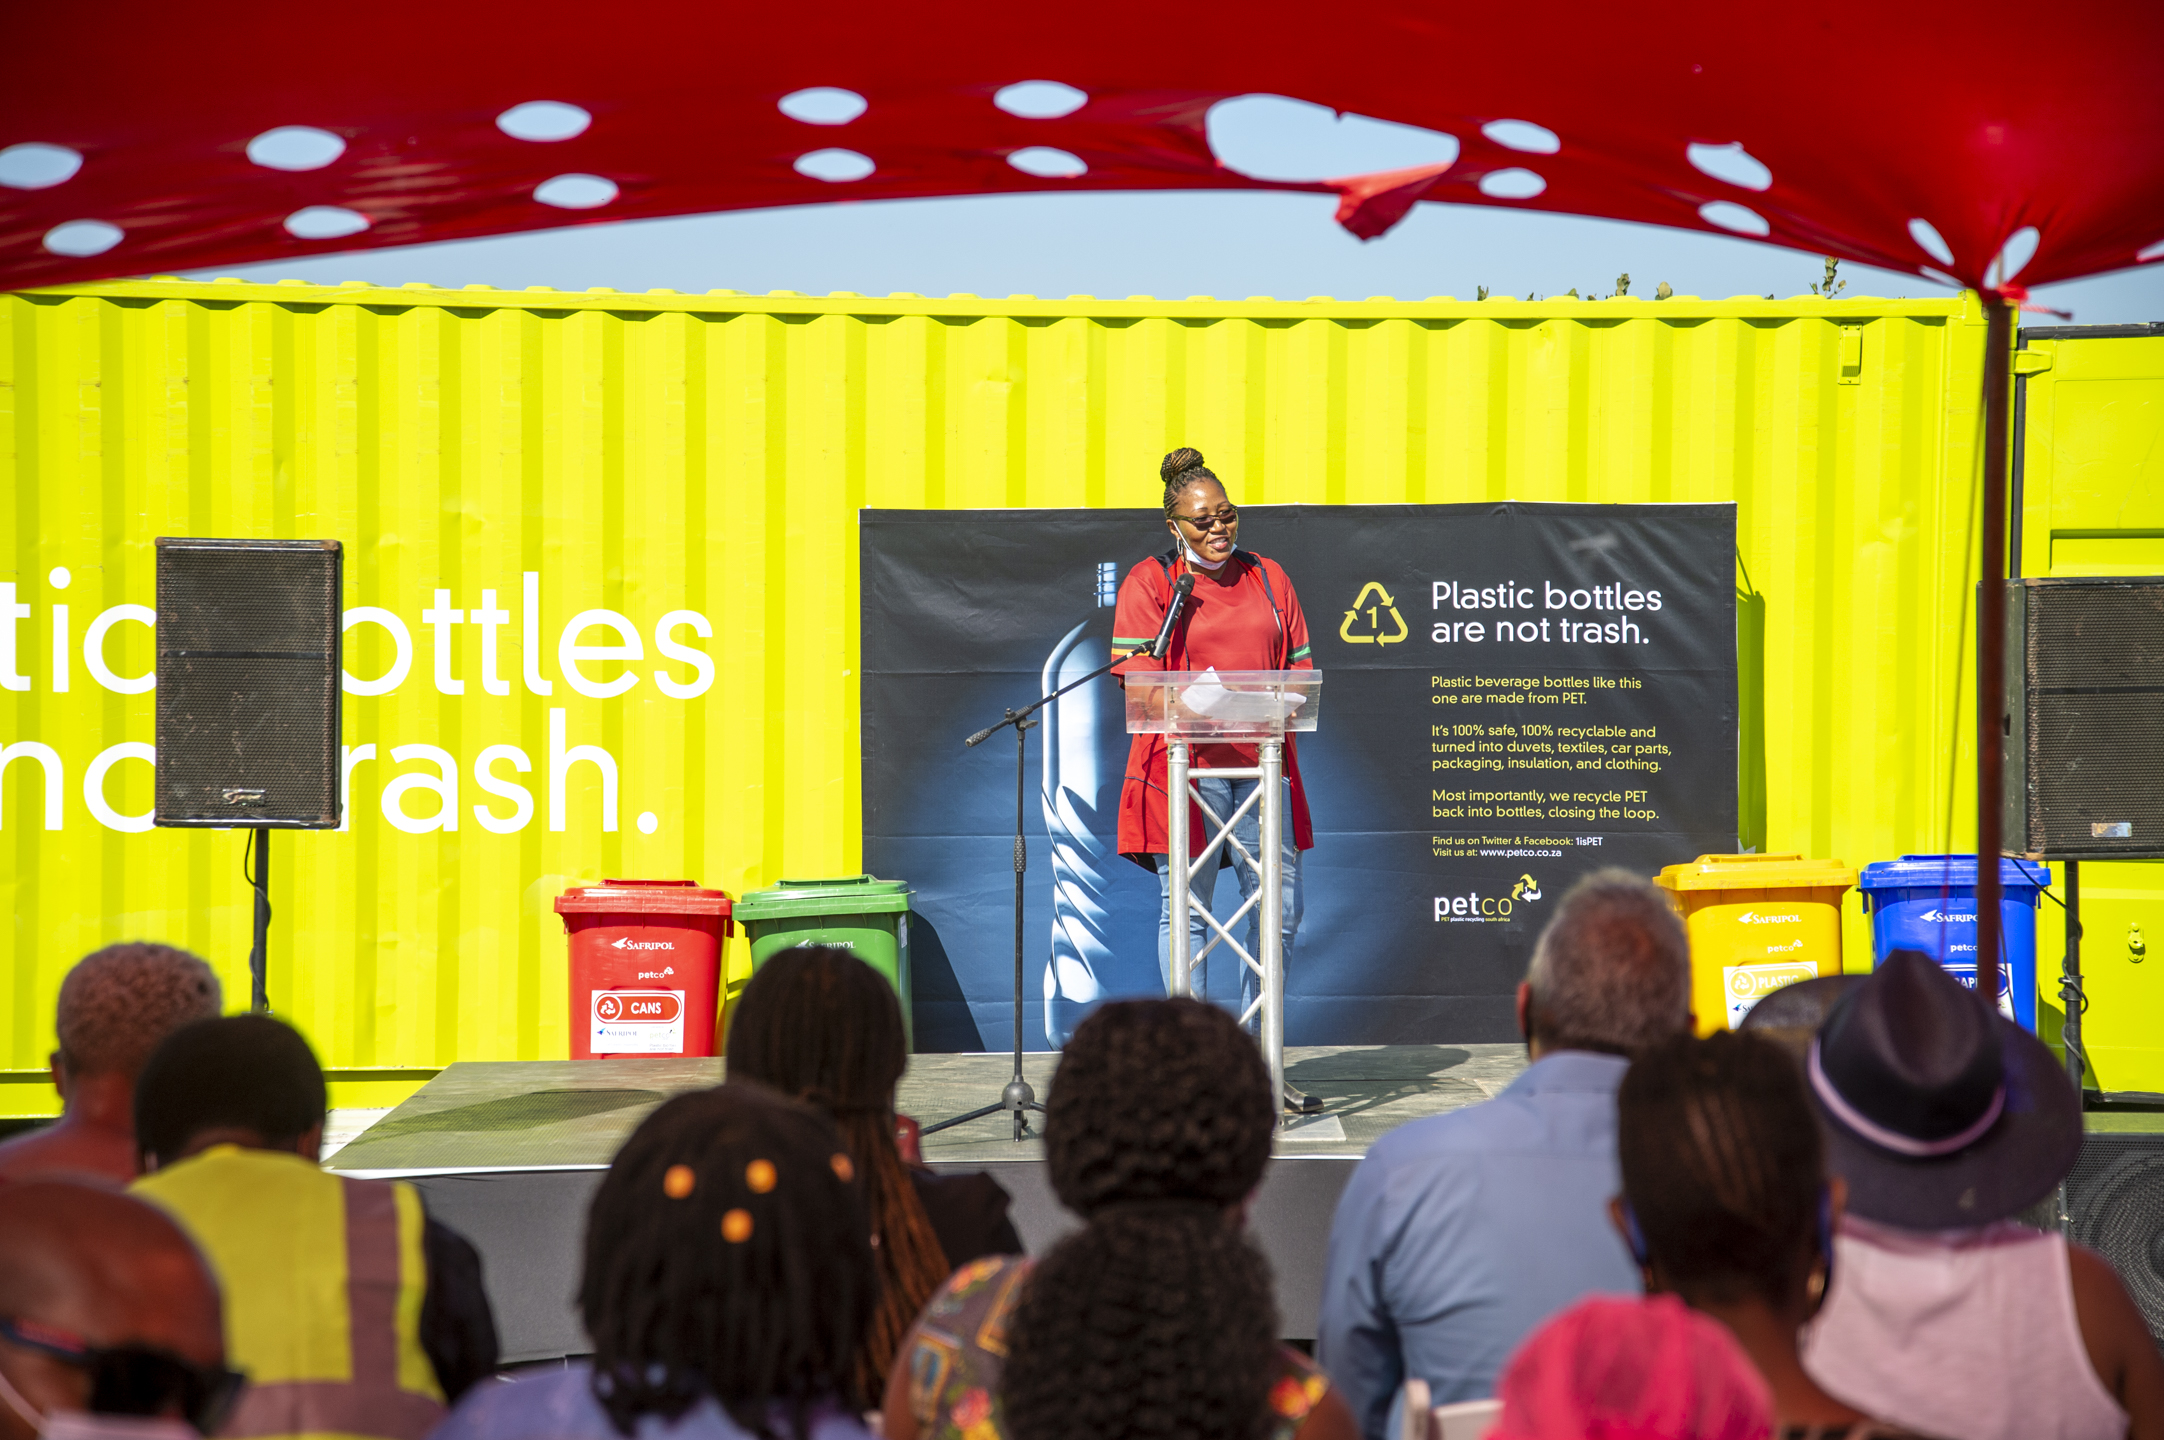 Unique recycling project gains national traction